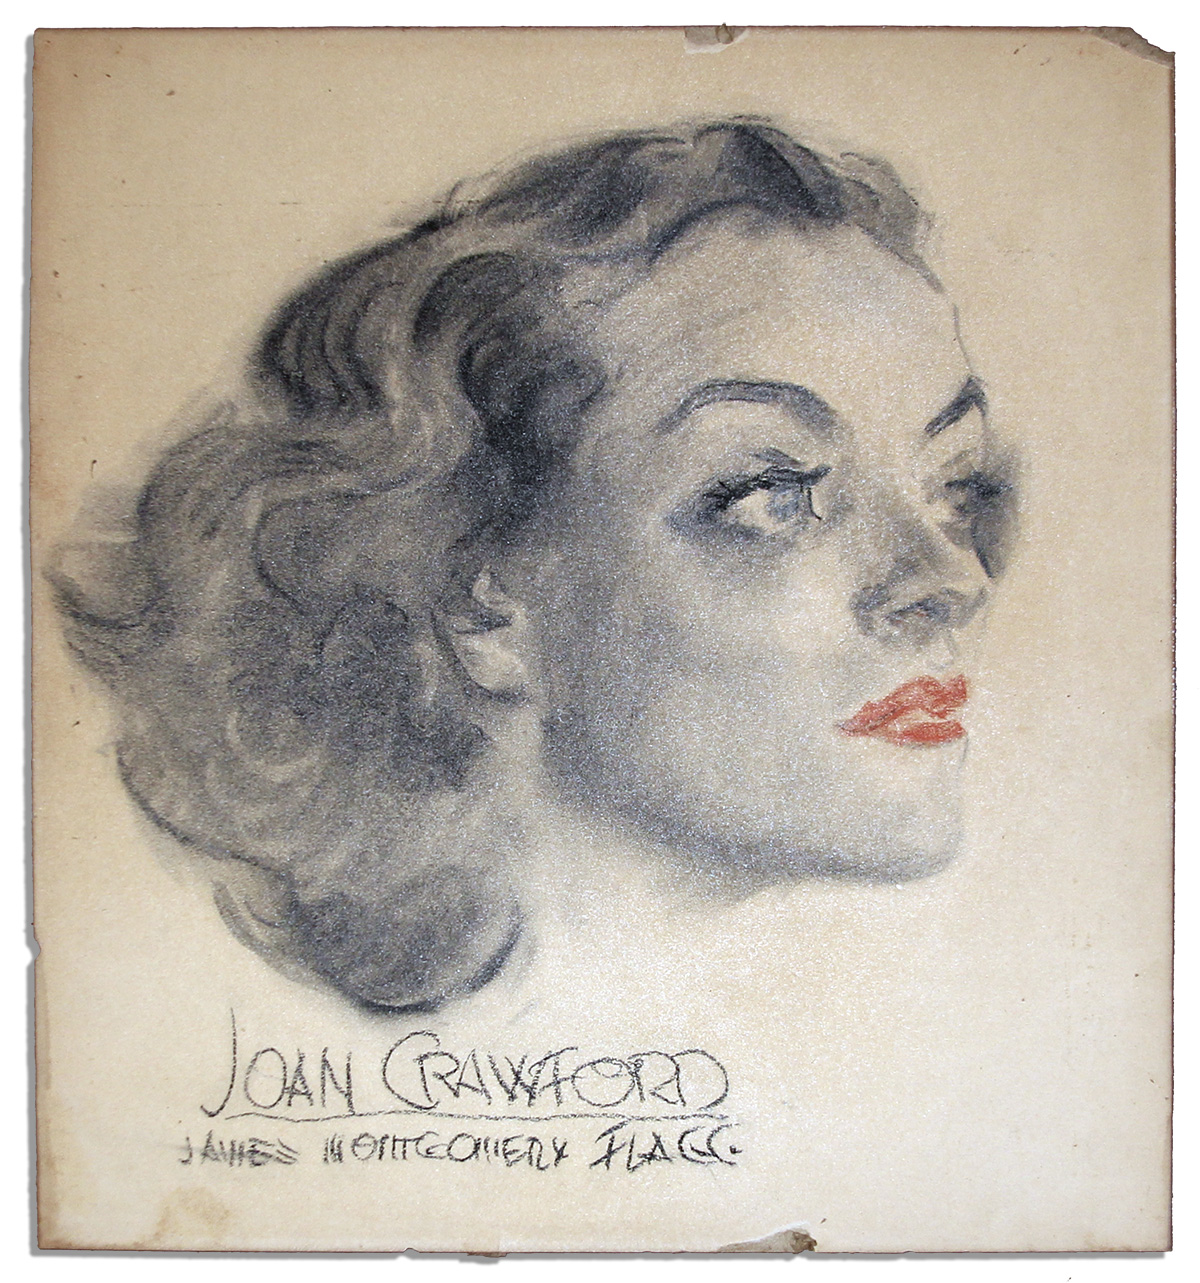 Joan Crawford Memorabilia James Montgomery Flagg Art